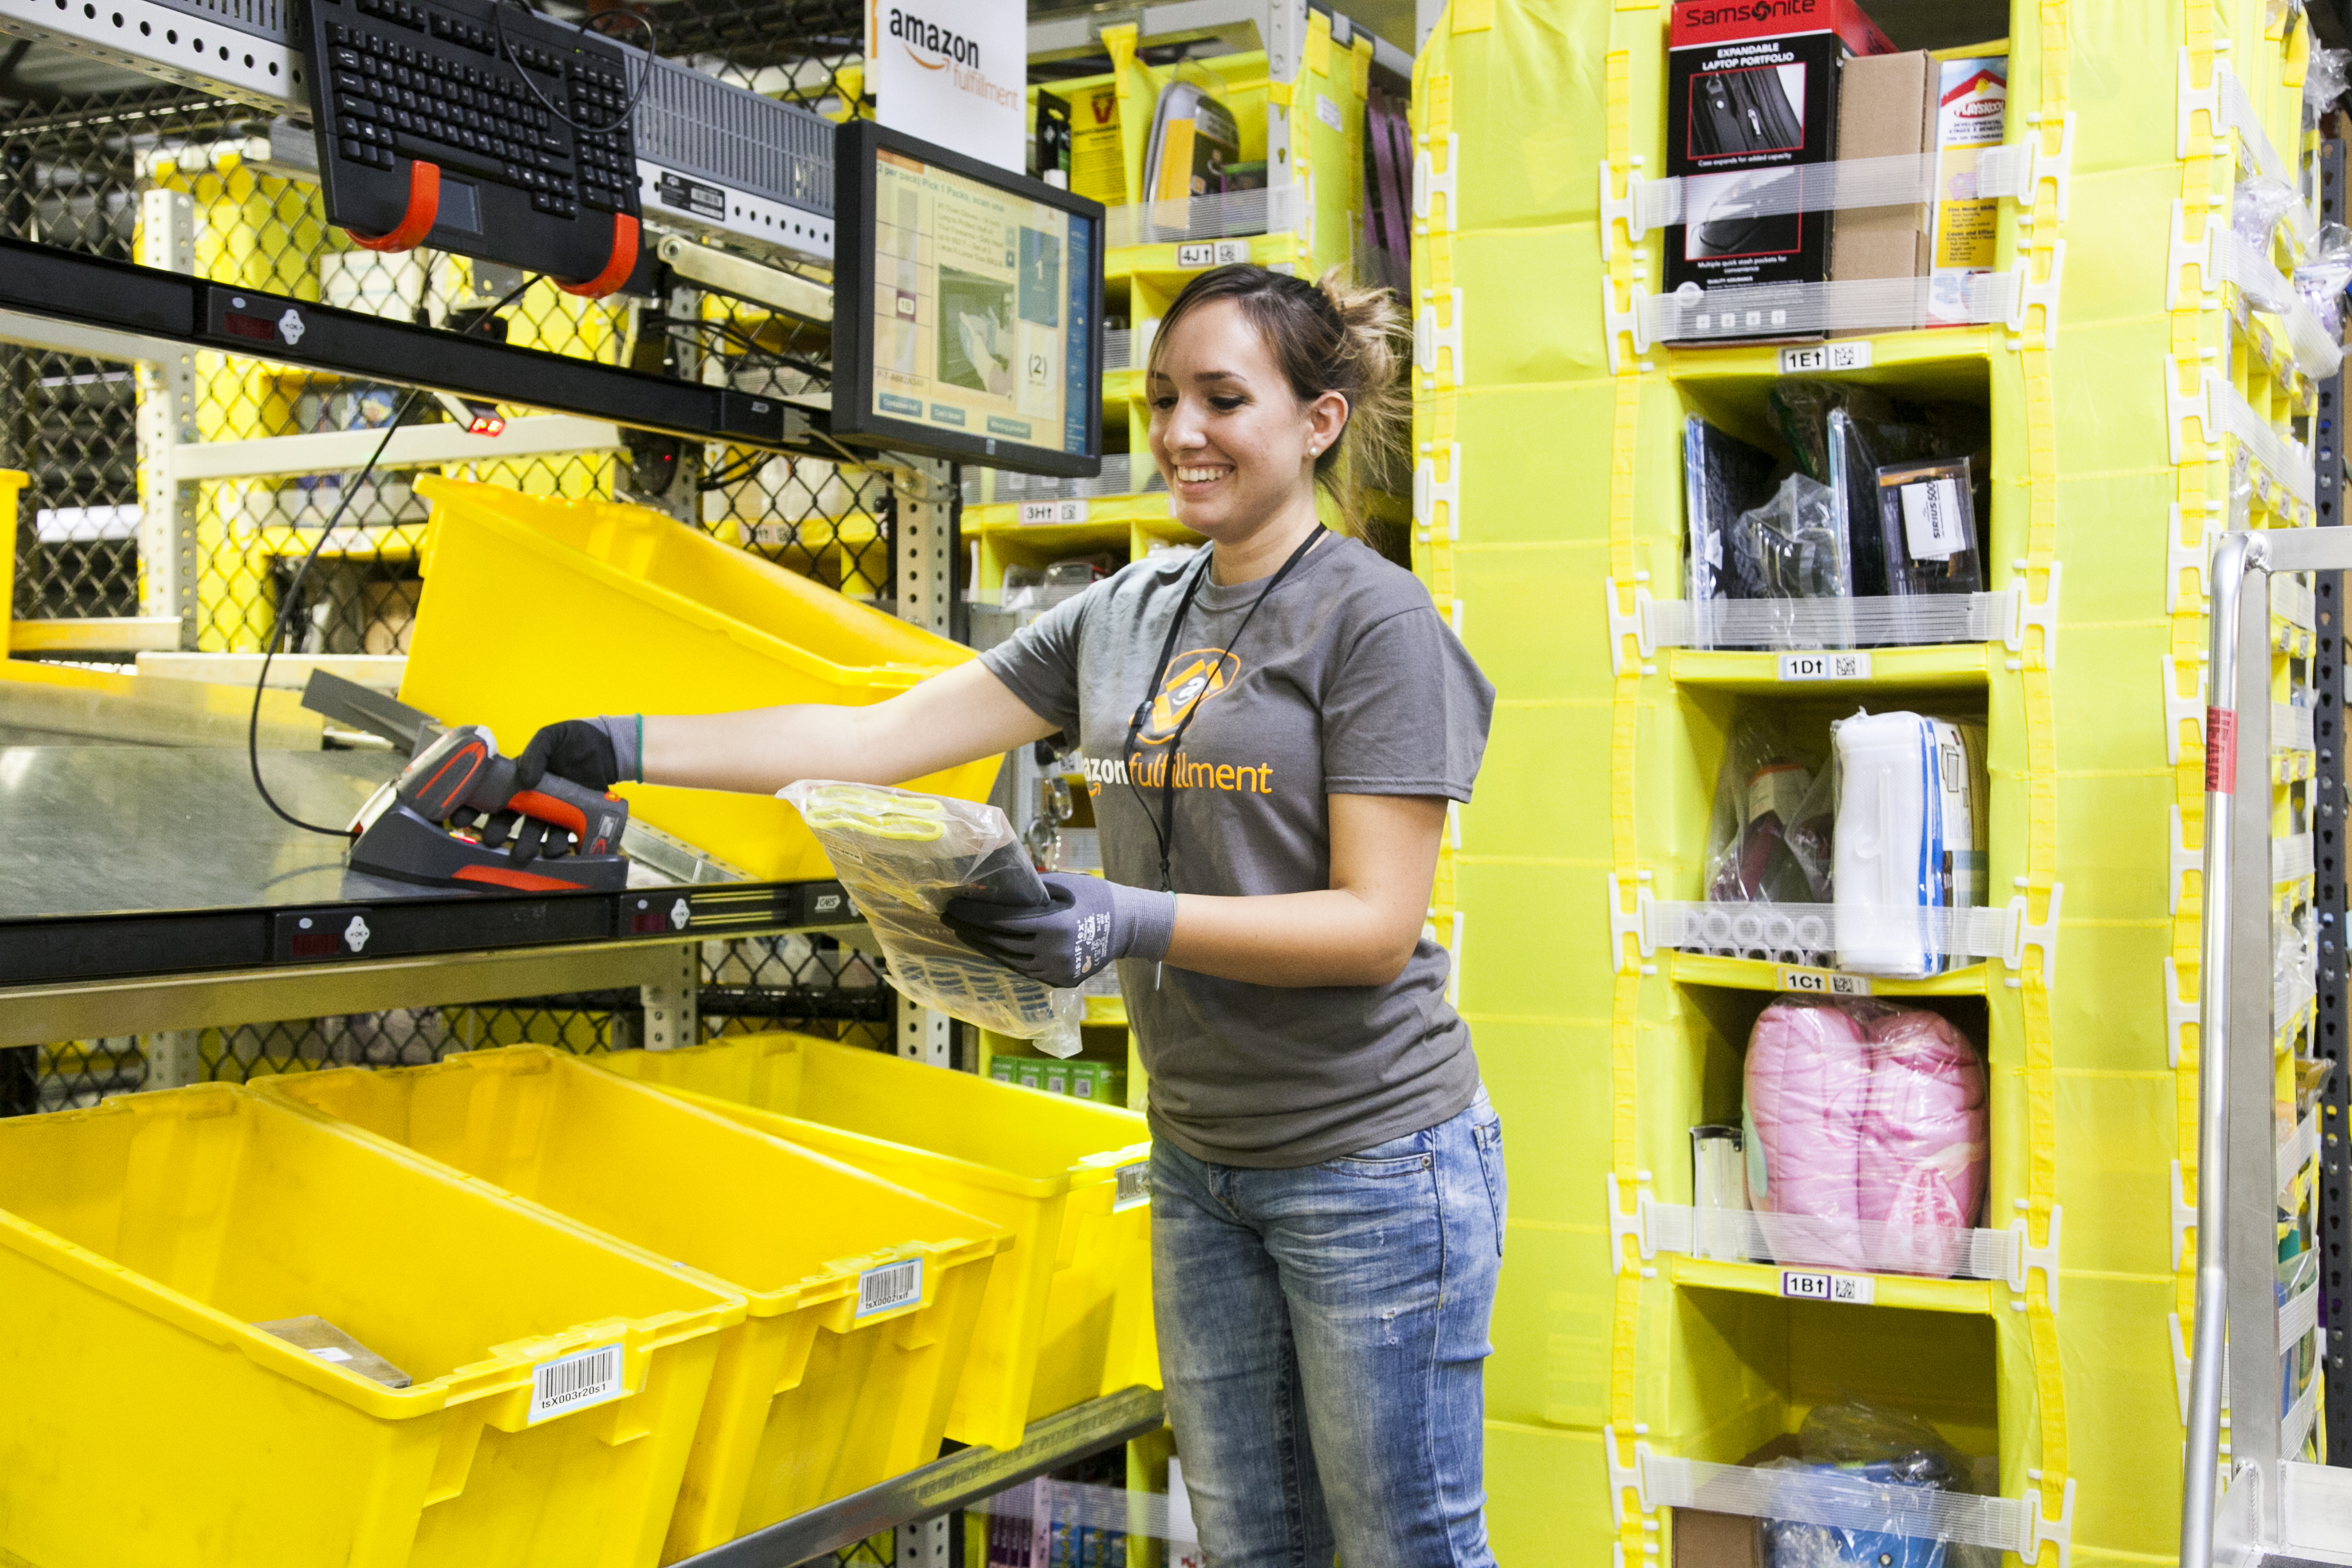 An Amazon employee picks items in the company's newest generation fulfillment center. (Photo: Business Wire)